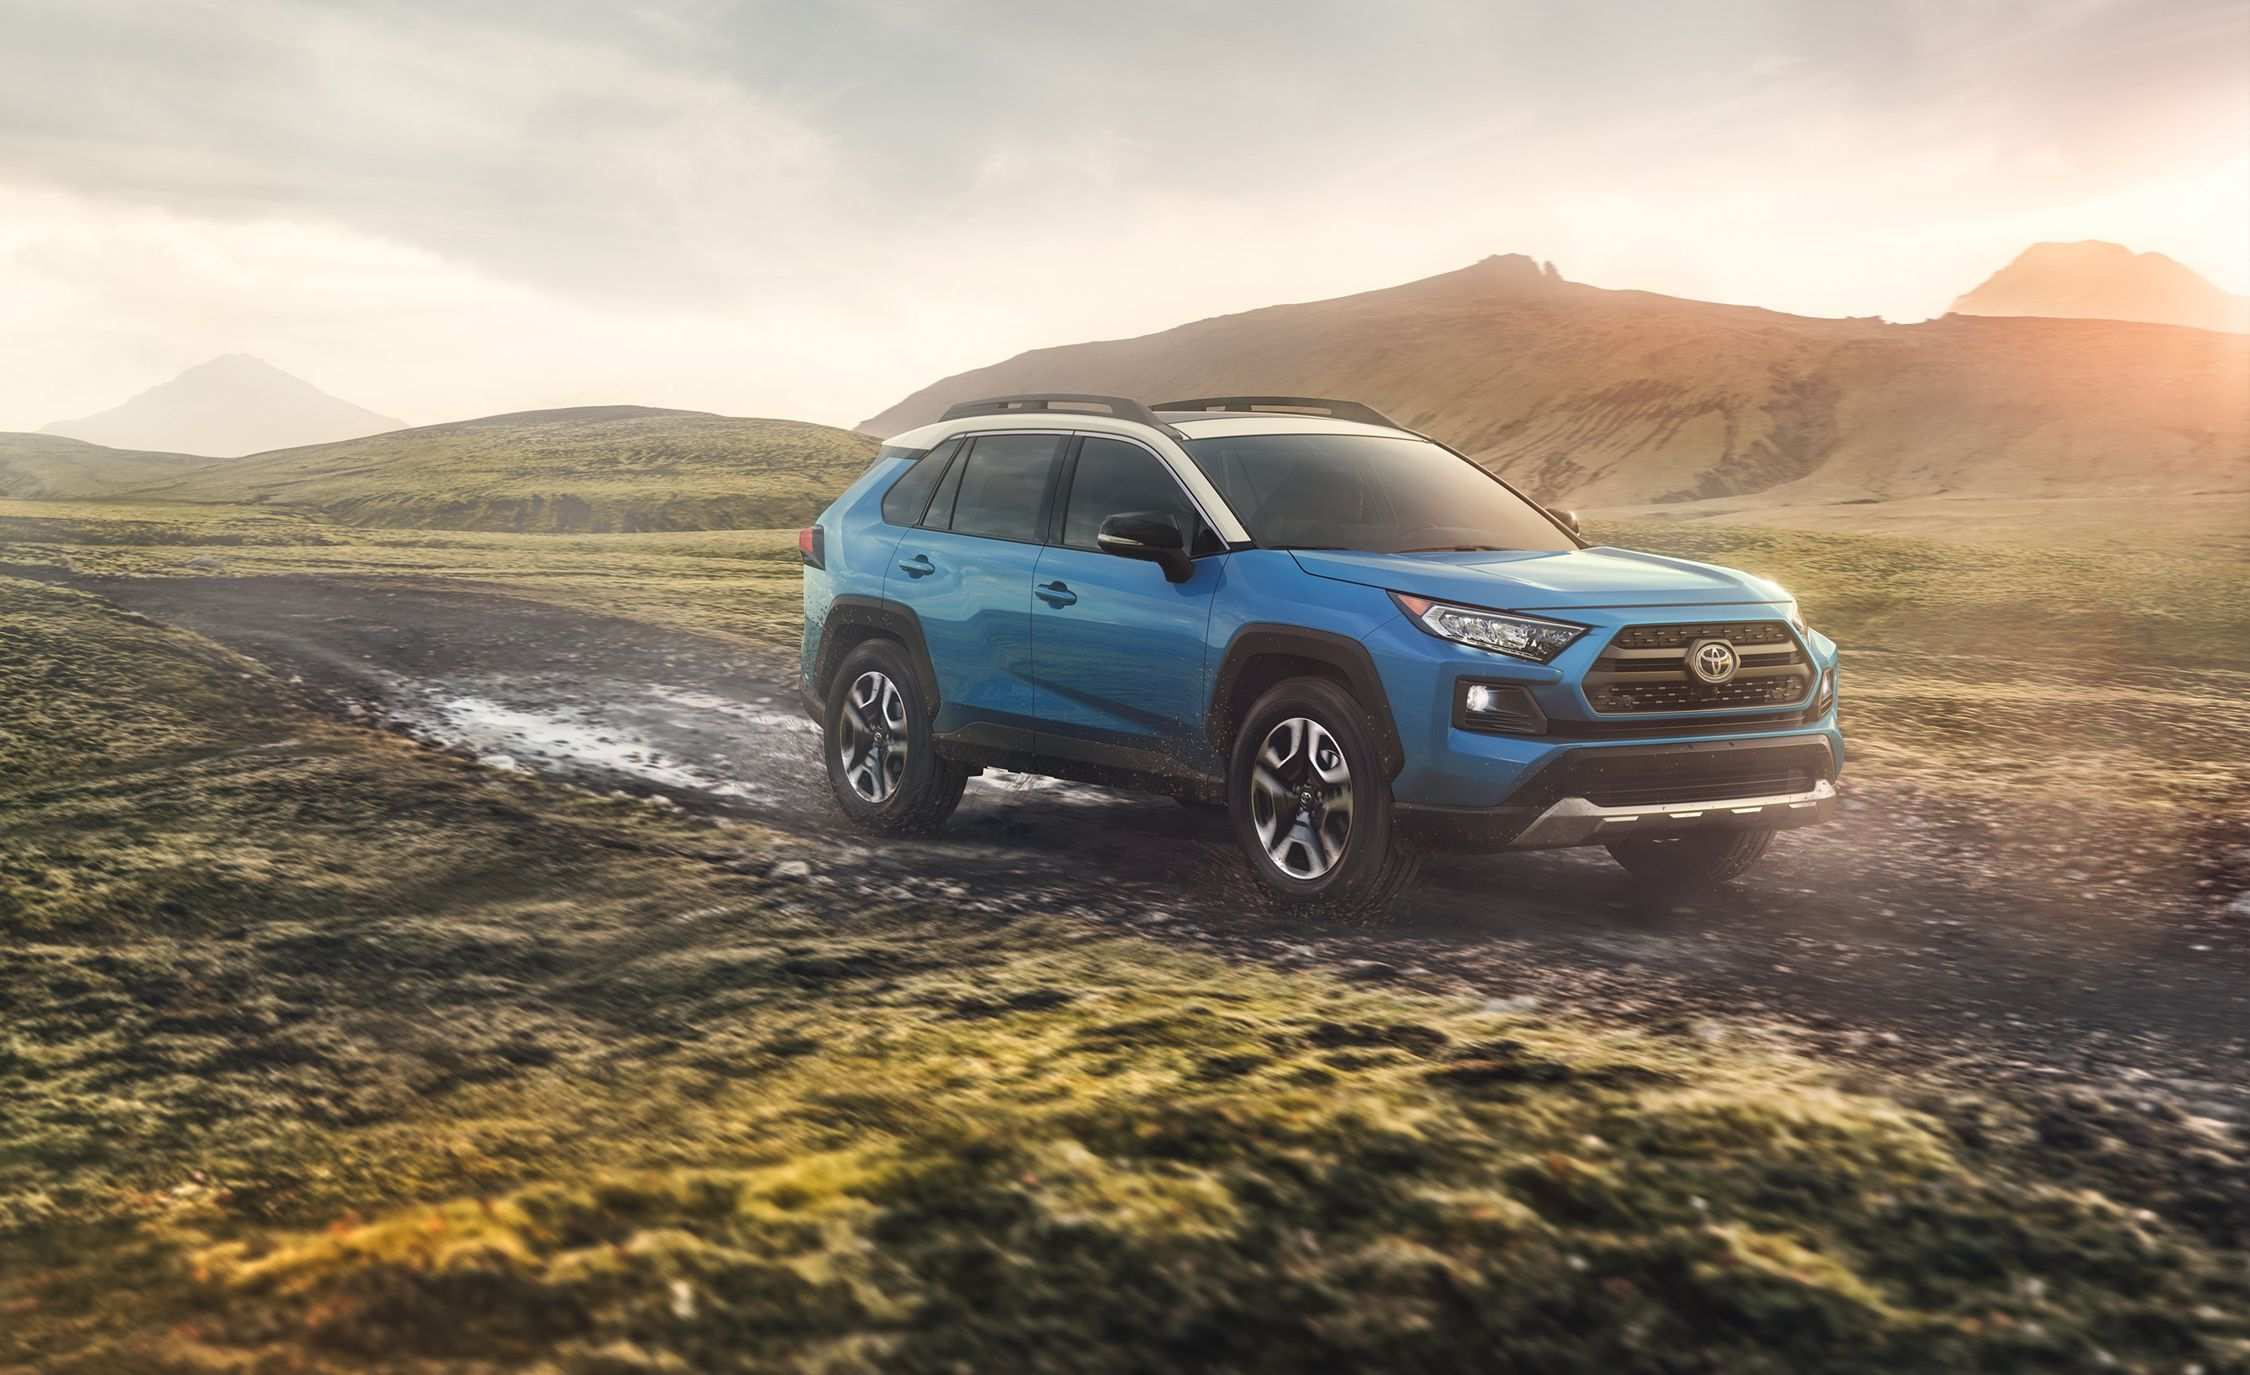 76 Gallery of 2019 Toyota Rav4 Hybrid Specs Images for 2019 Toyota Rav4 Hybrid Specs